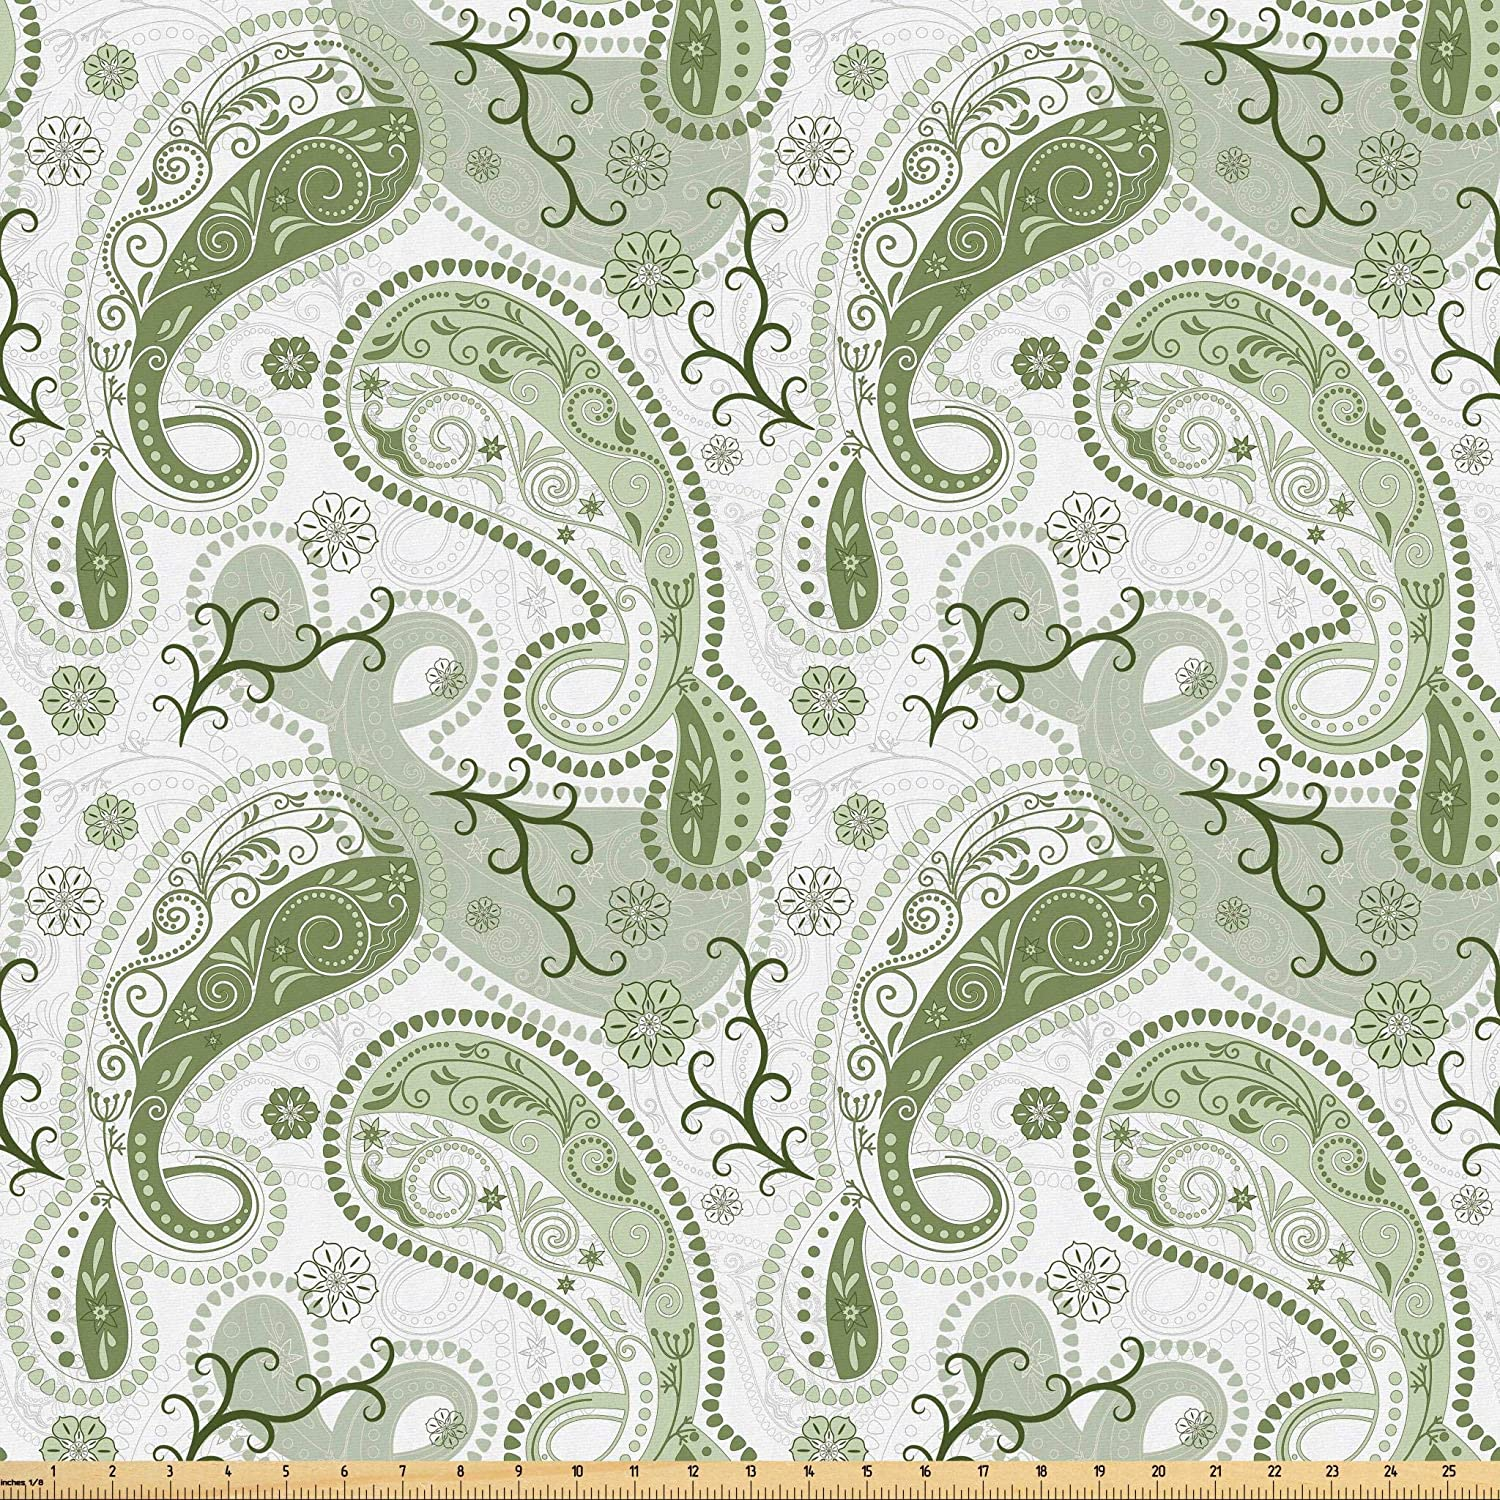 Lunarable Paisley Fabric by The Yard, Pastel Color Scheme with Swirls and Lines Floral Arrangement Lace Pattern, Microfiber Fabric for Arts and Crafts Textiles Decor, 1 Yard, Green White